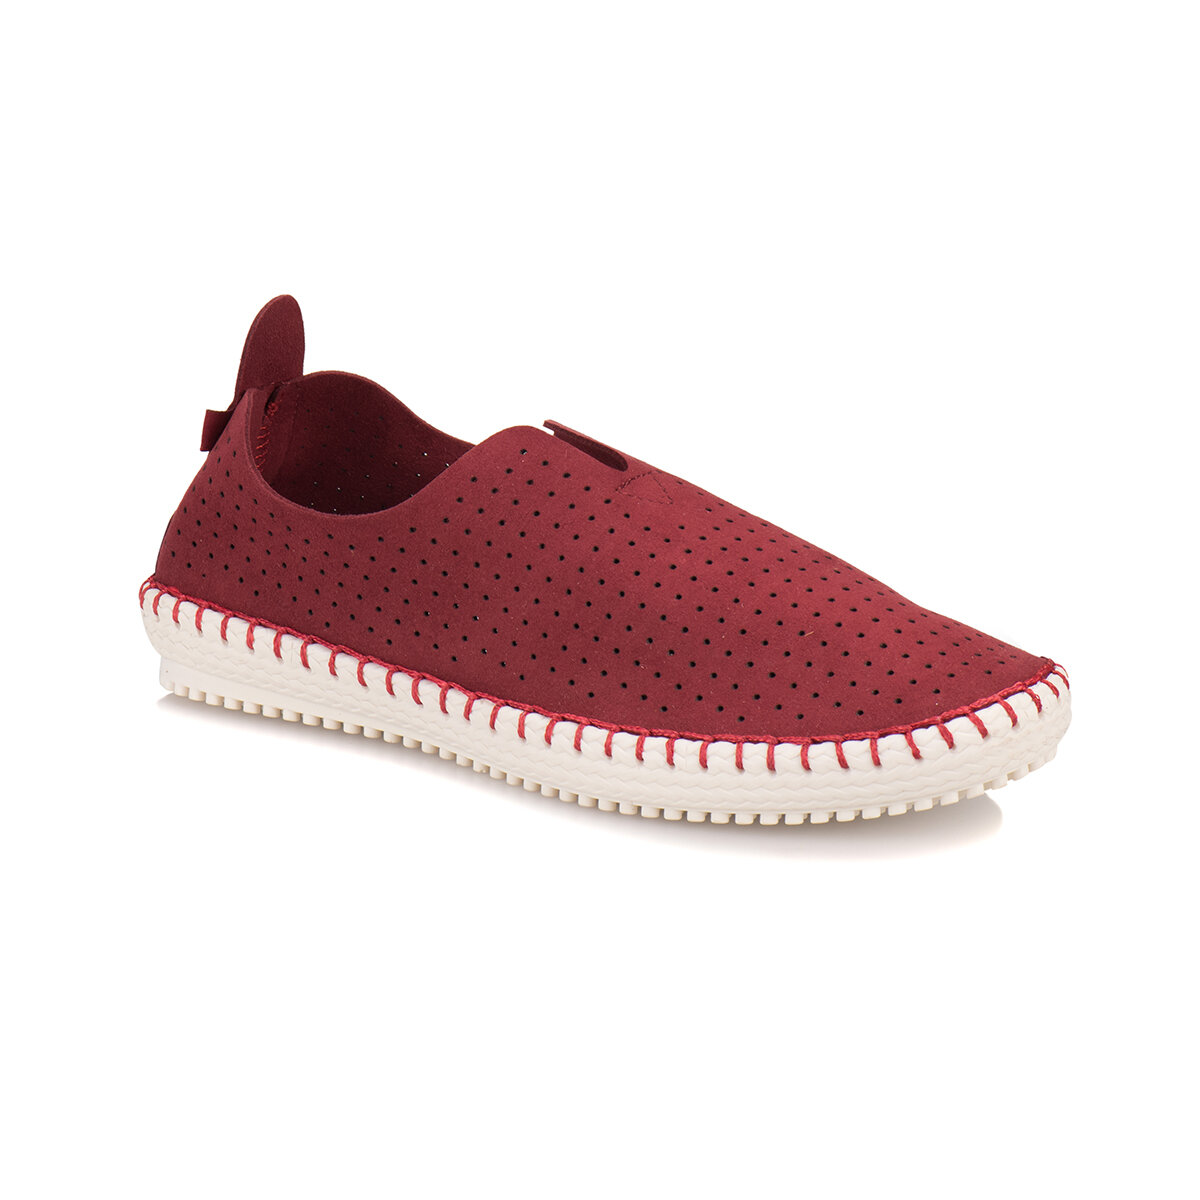 FLO A1300296 Burgundy Men 'S Sneaker Shoes KINETIX